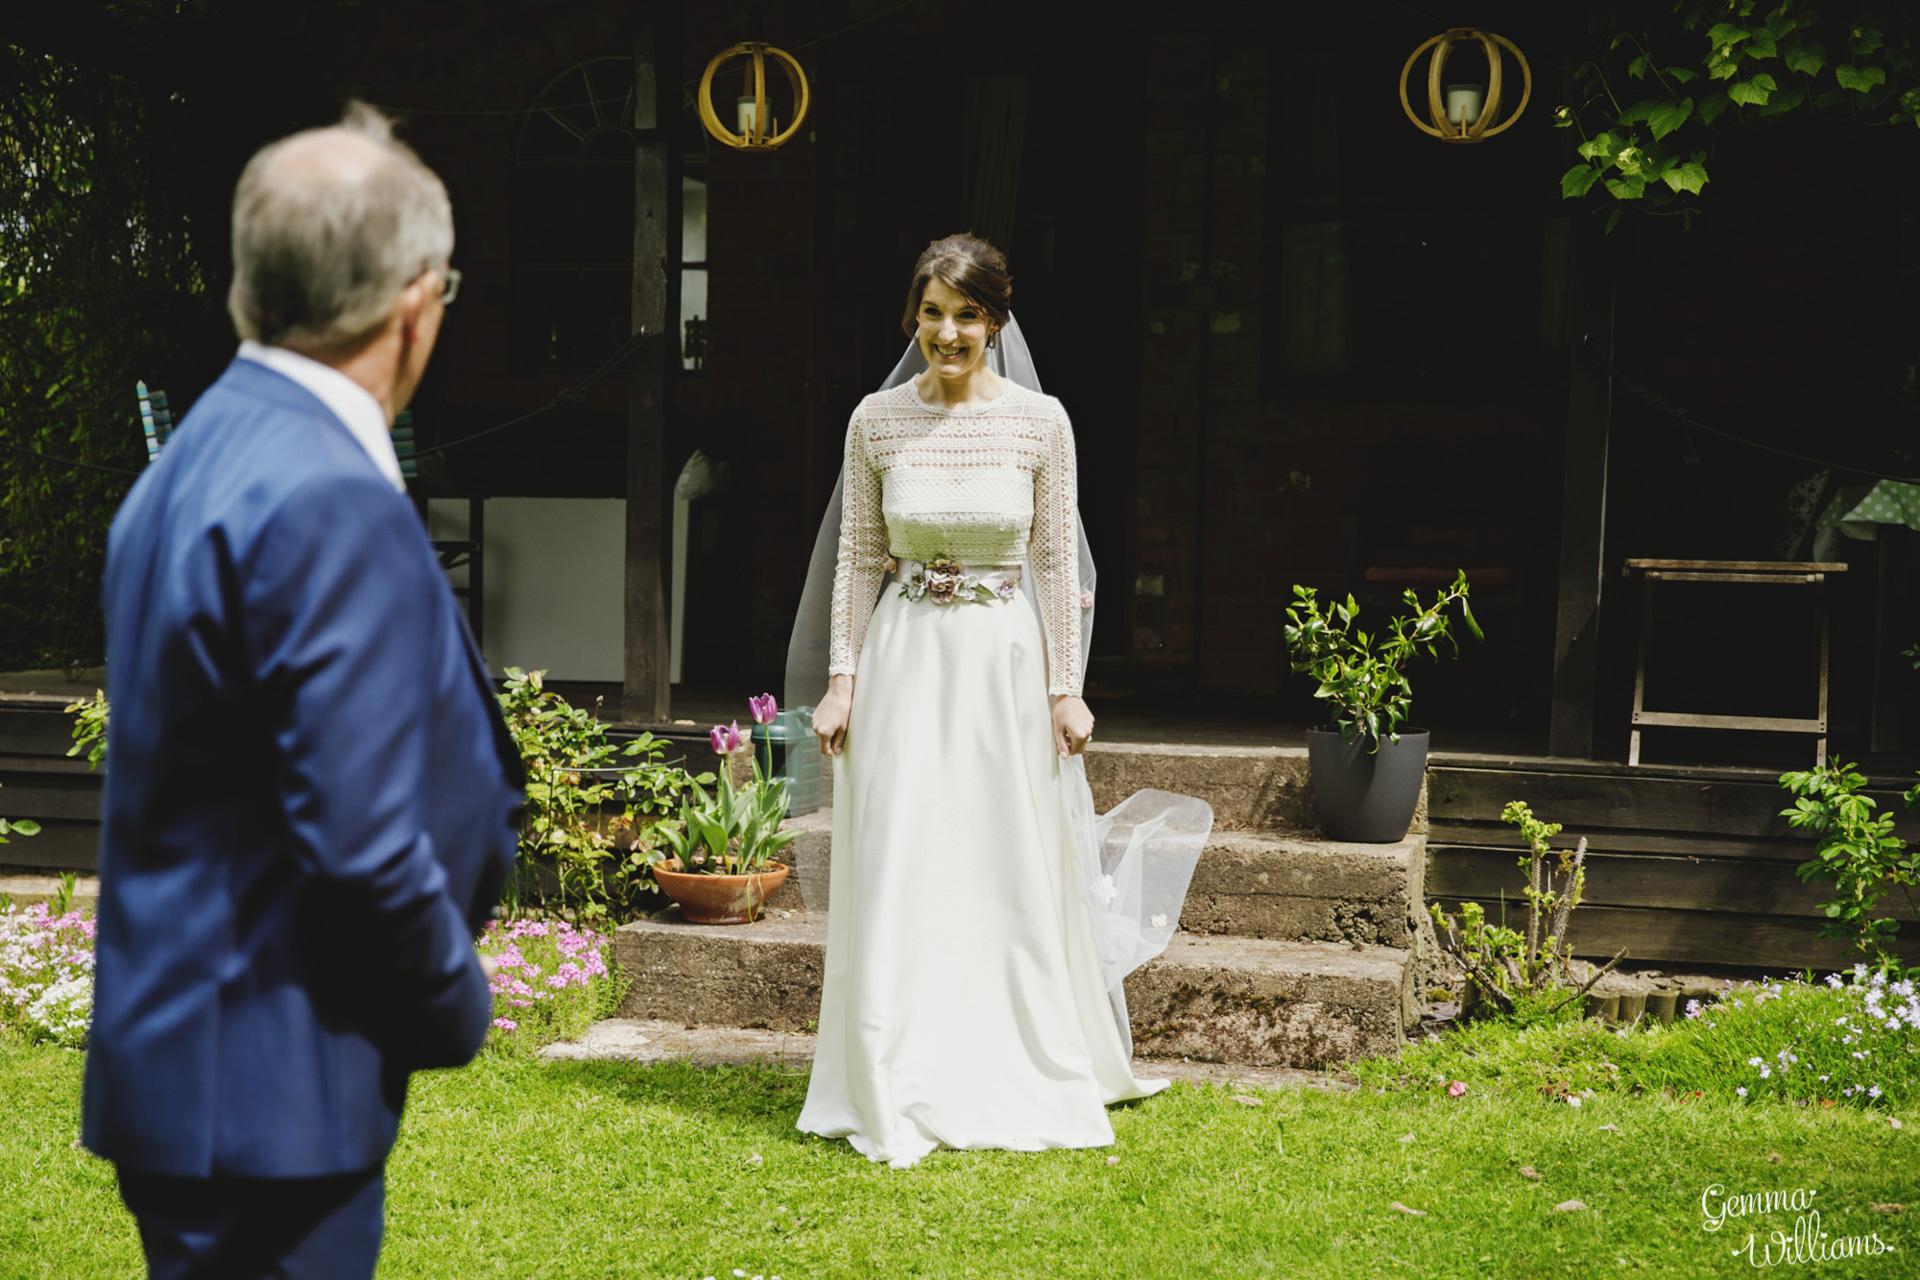 HaybarnWedding_GemmaWilliamsPhoto019.jpg